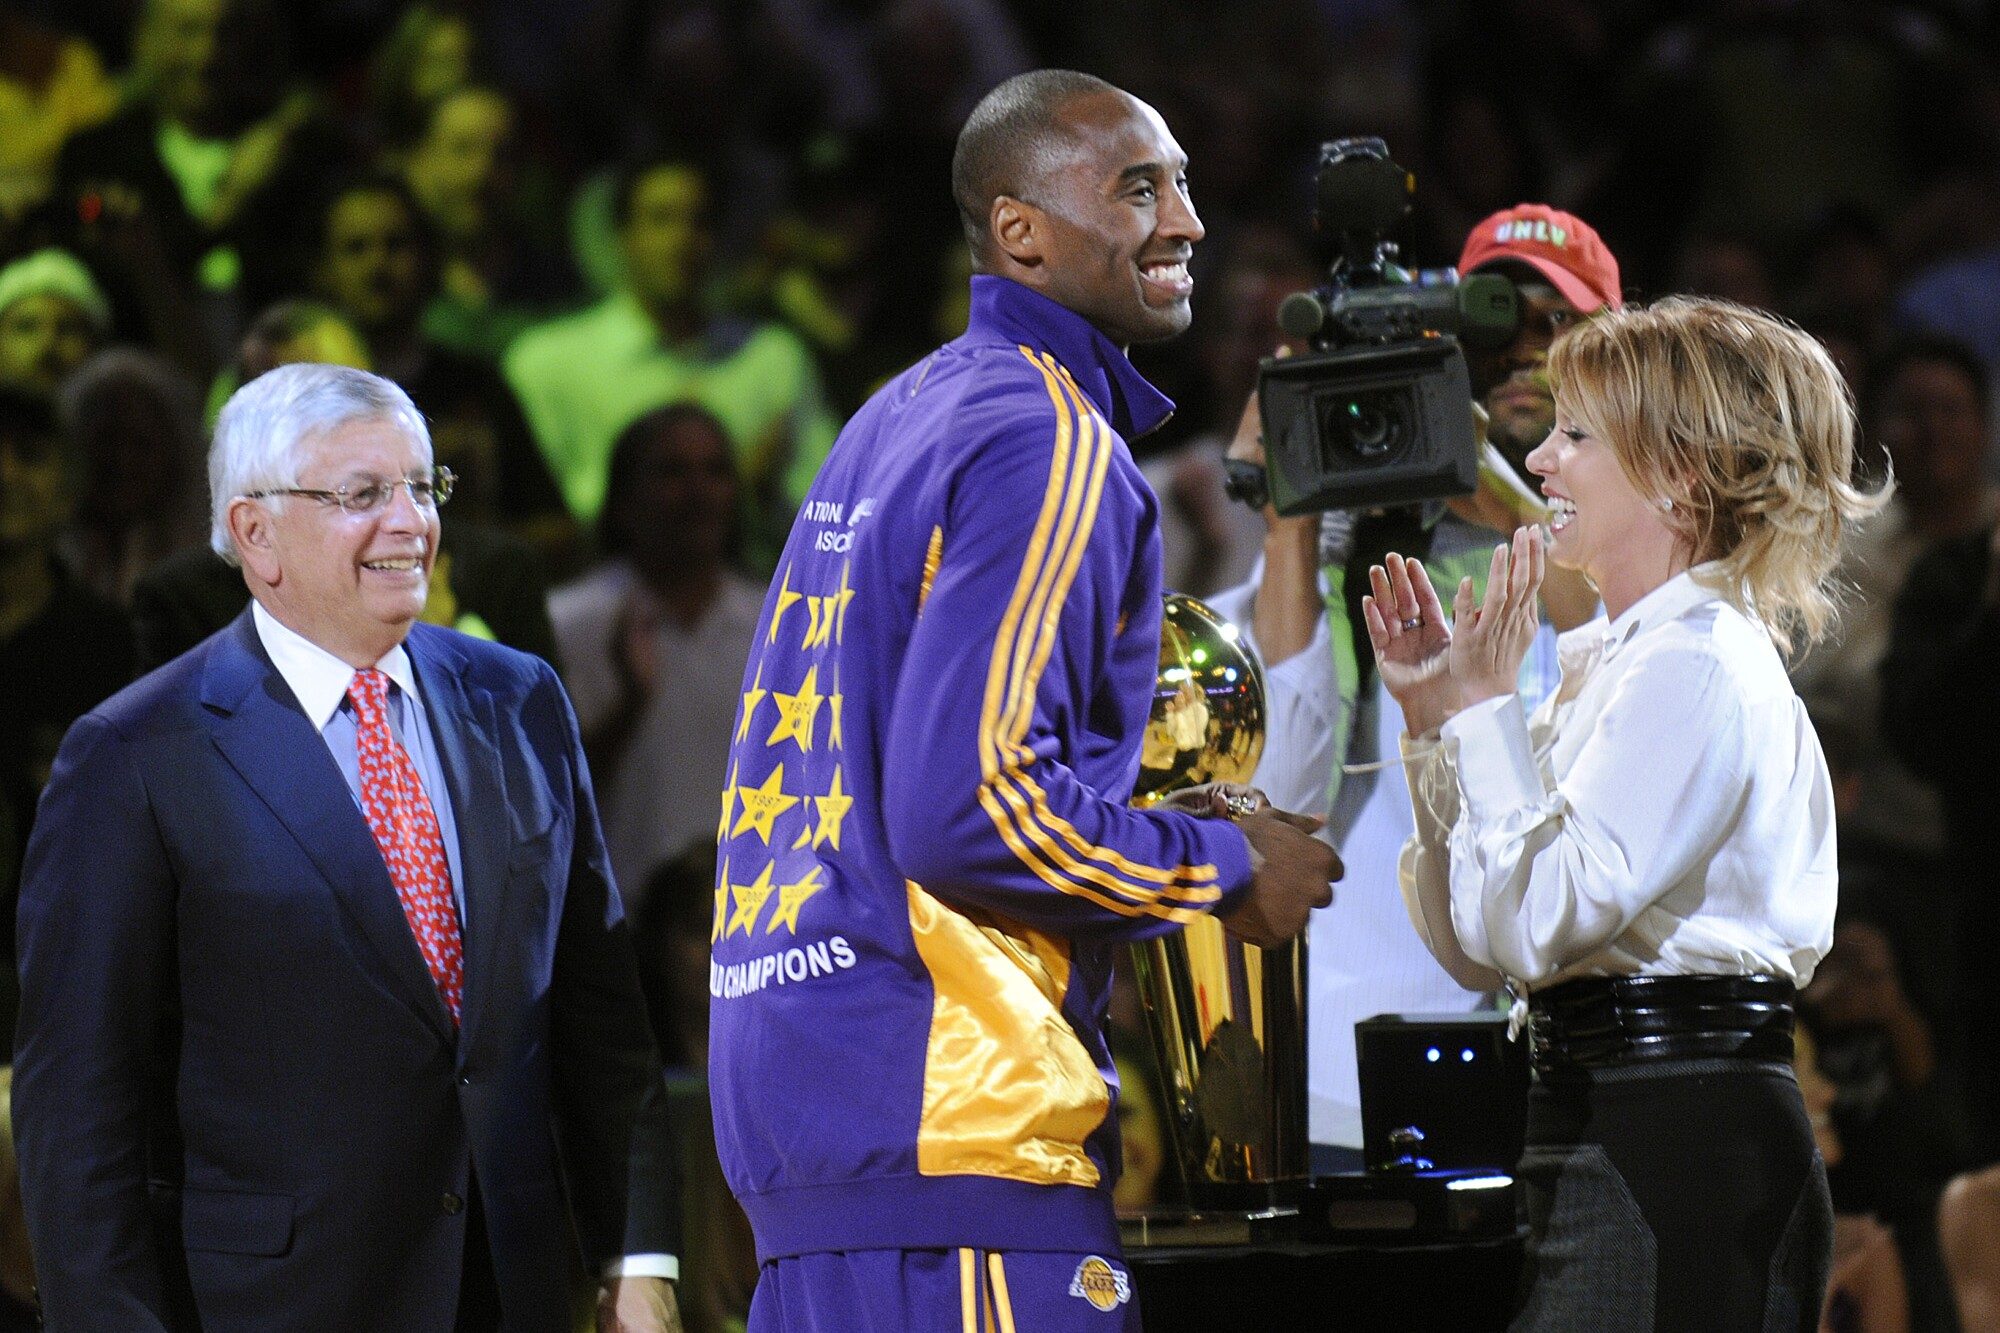 Kobe Bryant smiles after receiving his 2009 championship ring from NBA Commissioner David Stern, left, and Jeanie Buss.